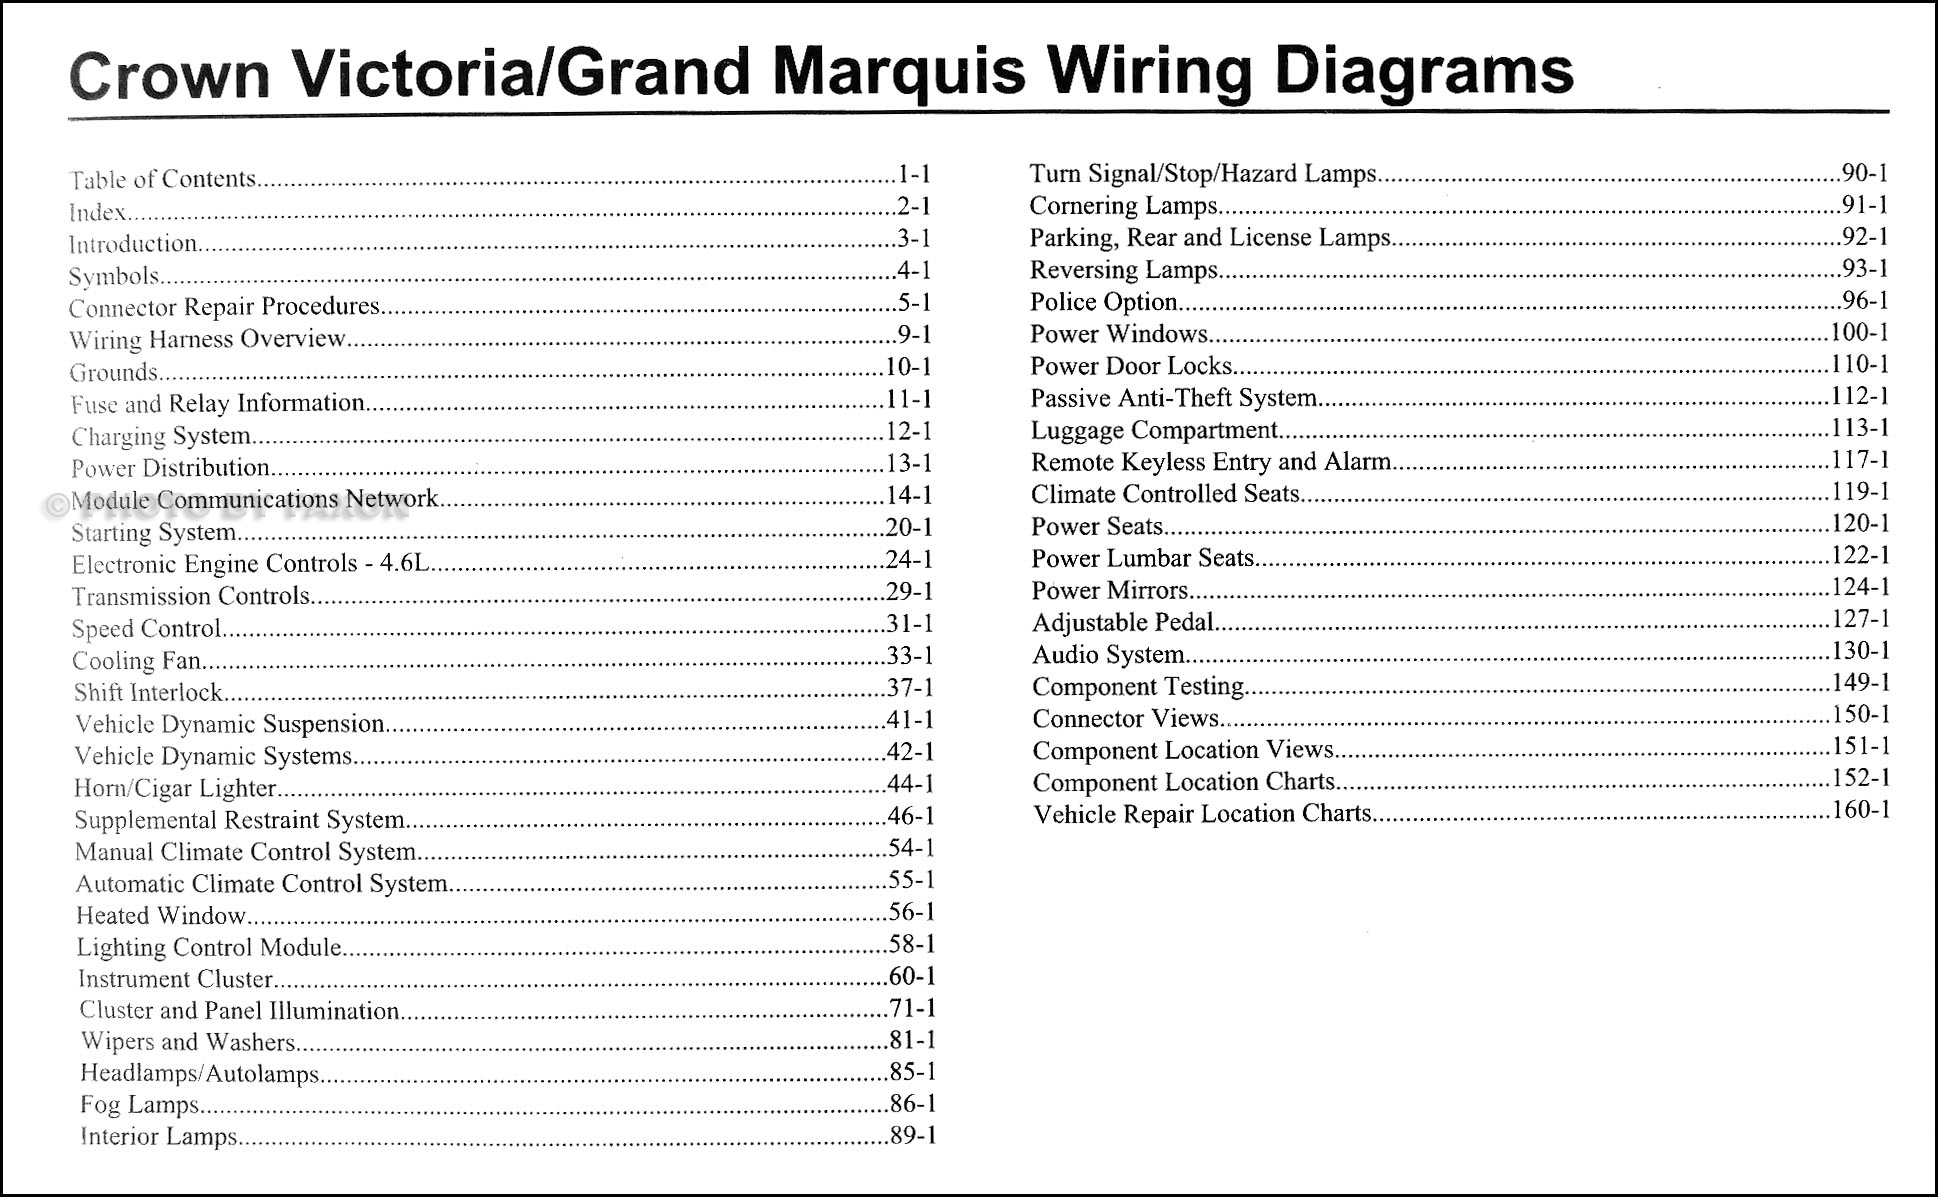 2009FordCrownVictoriaOWD TOC 2009 crown victoria & grand marquis original wiring diagram manual 1989 grand marquis fuse box diagram at reclaimingppi.co